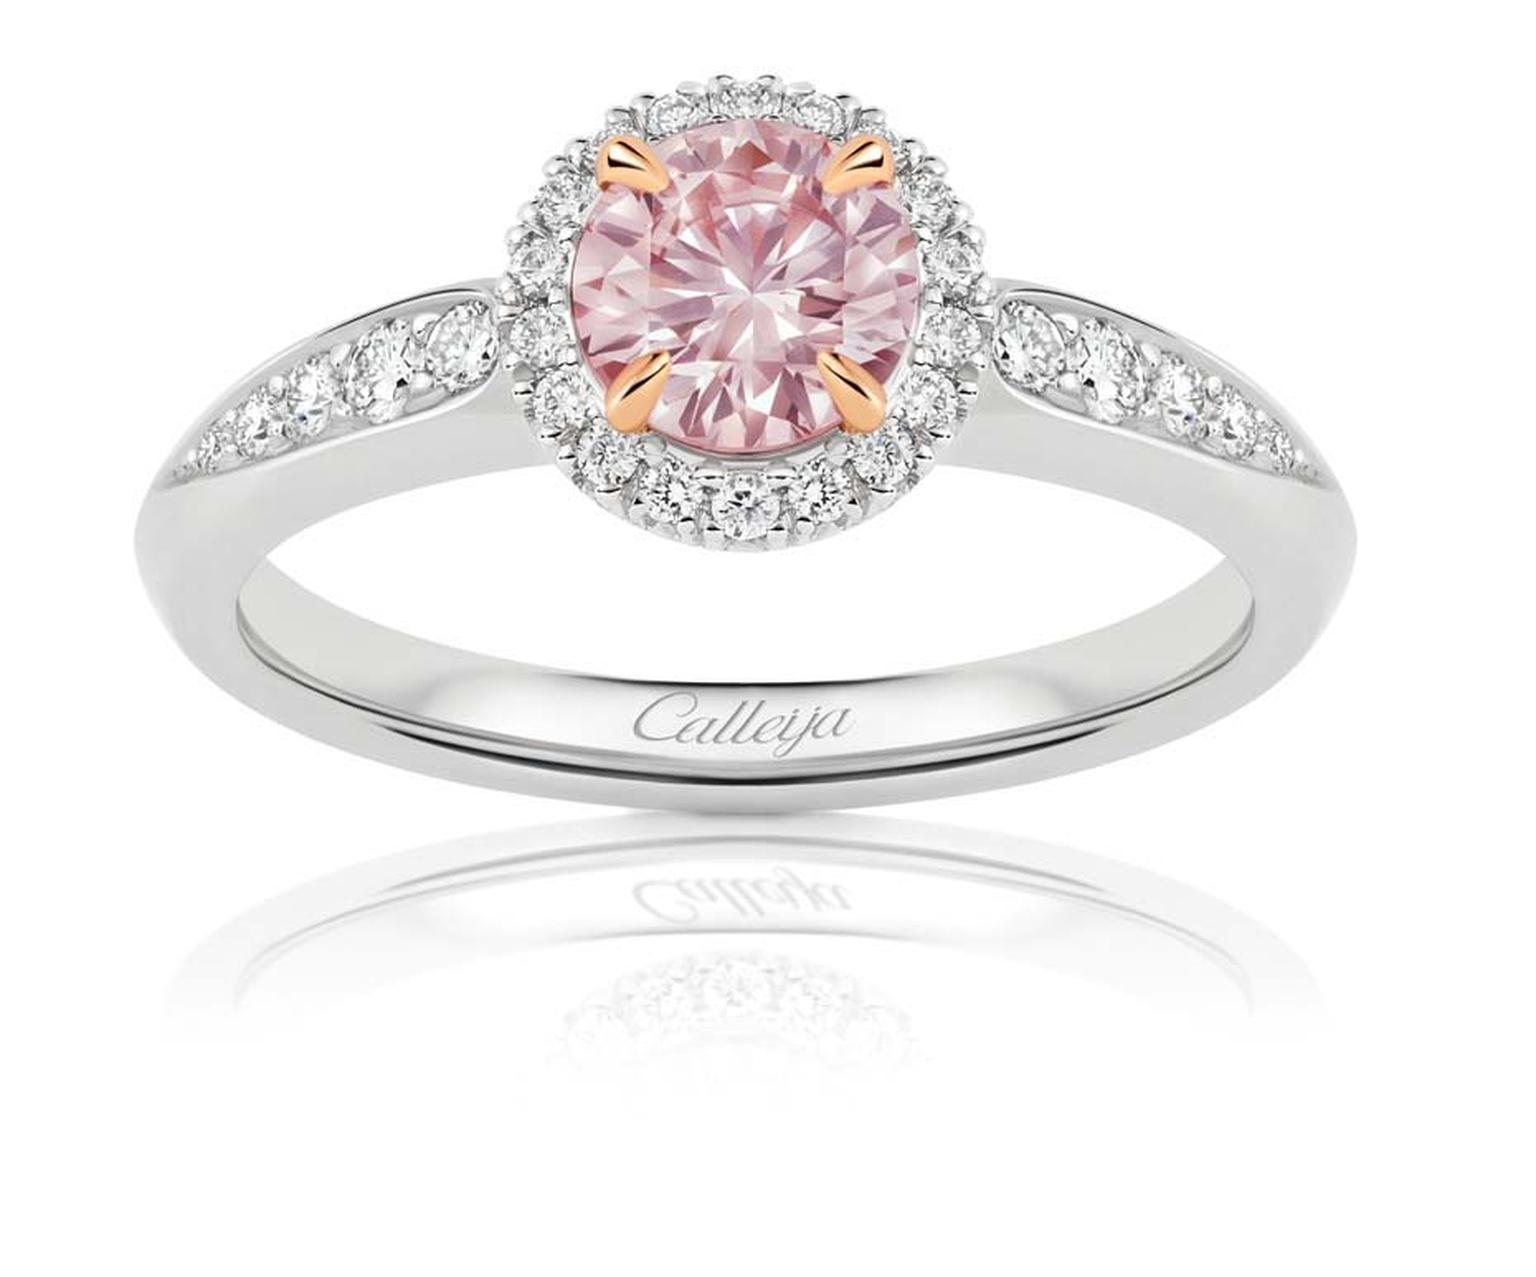 Calleija oval-cut pink diamond engagement ring featuring a pink diamond central stone surrounded by white diamonds.